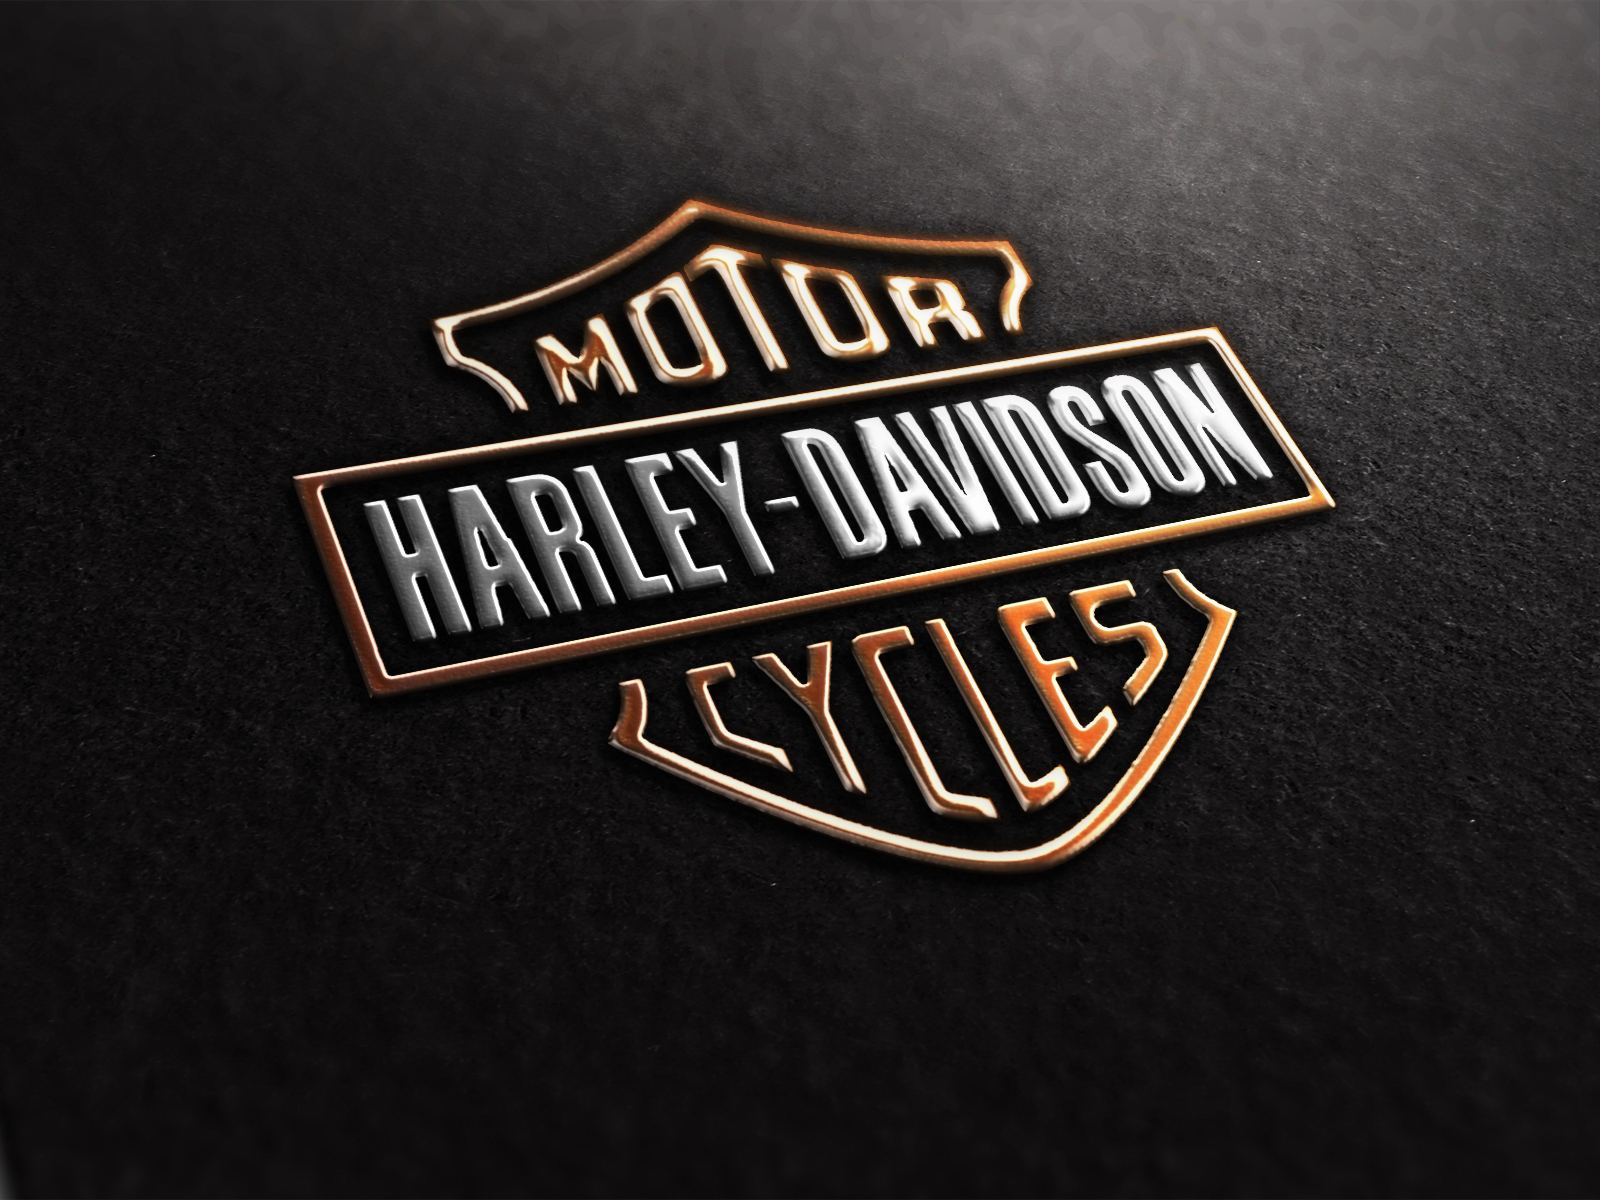 Harley Davidson Logo Desktop 853 HD Wallpaper 3D Desktop 1600x1200